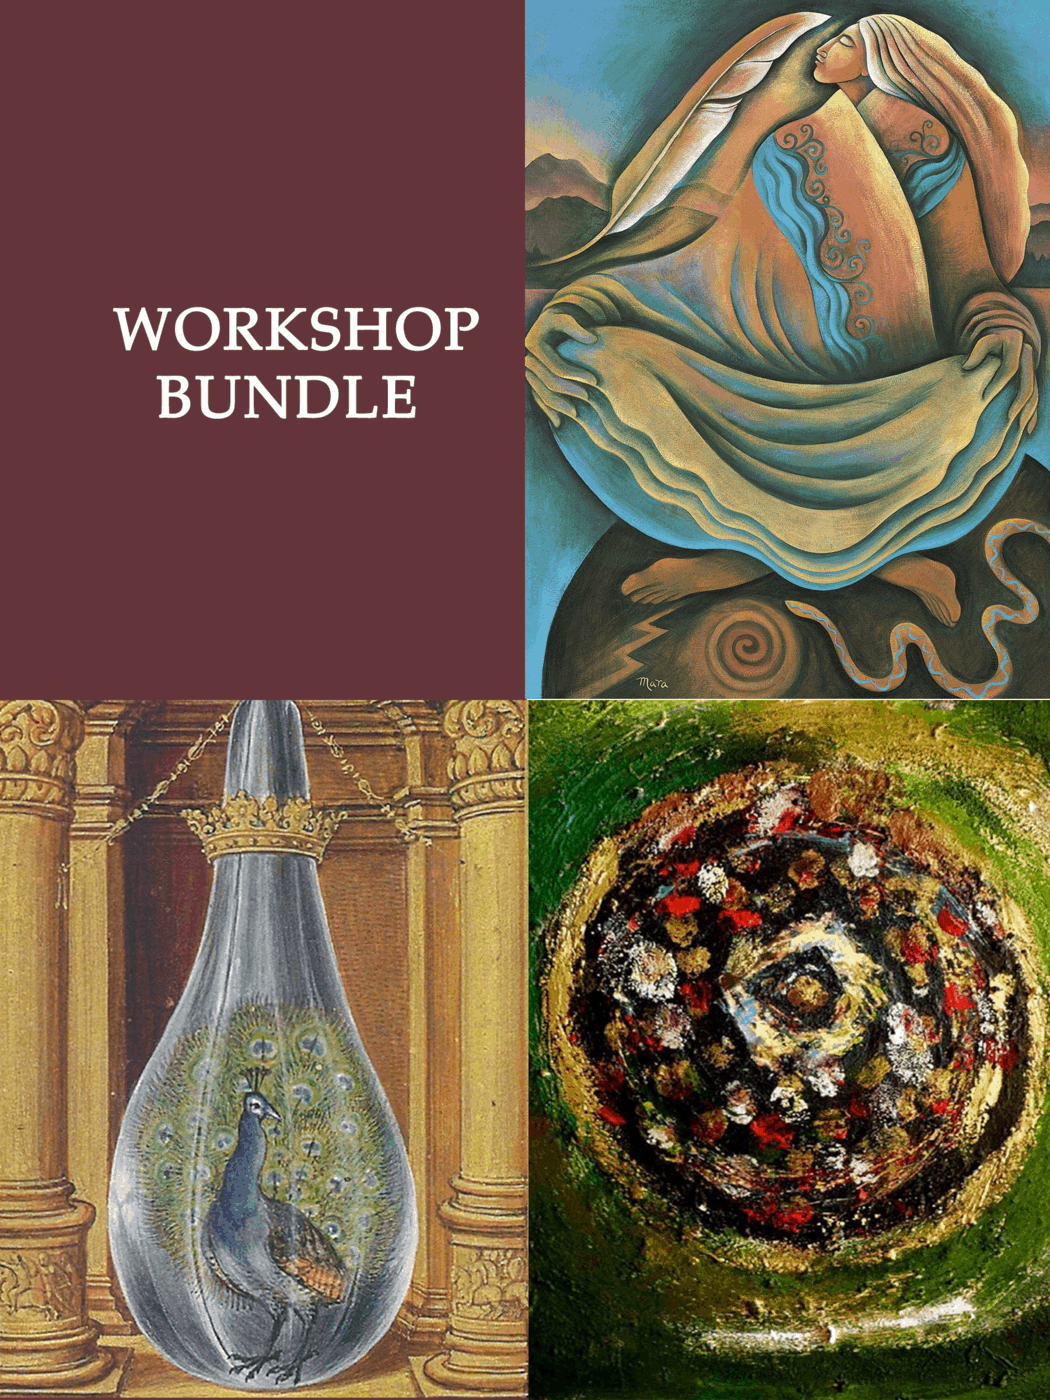 Workshop Bundle Combo Image 2019